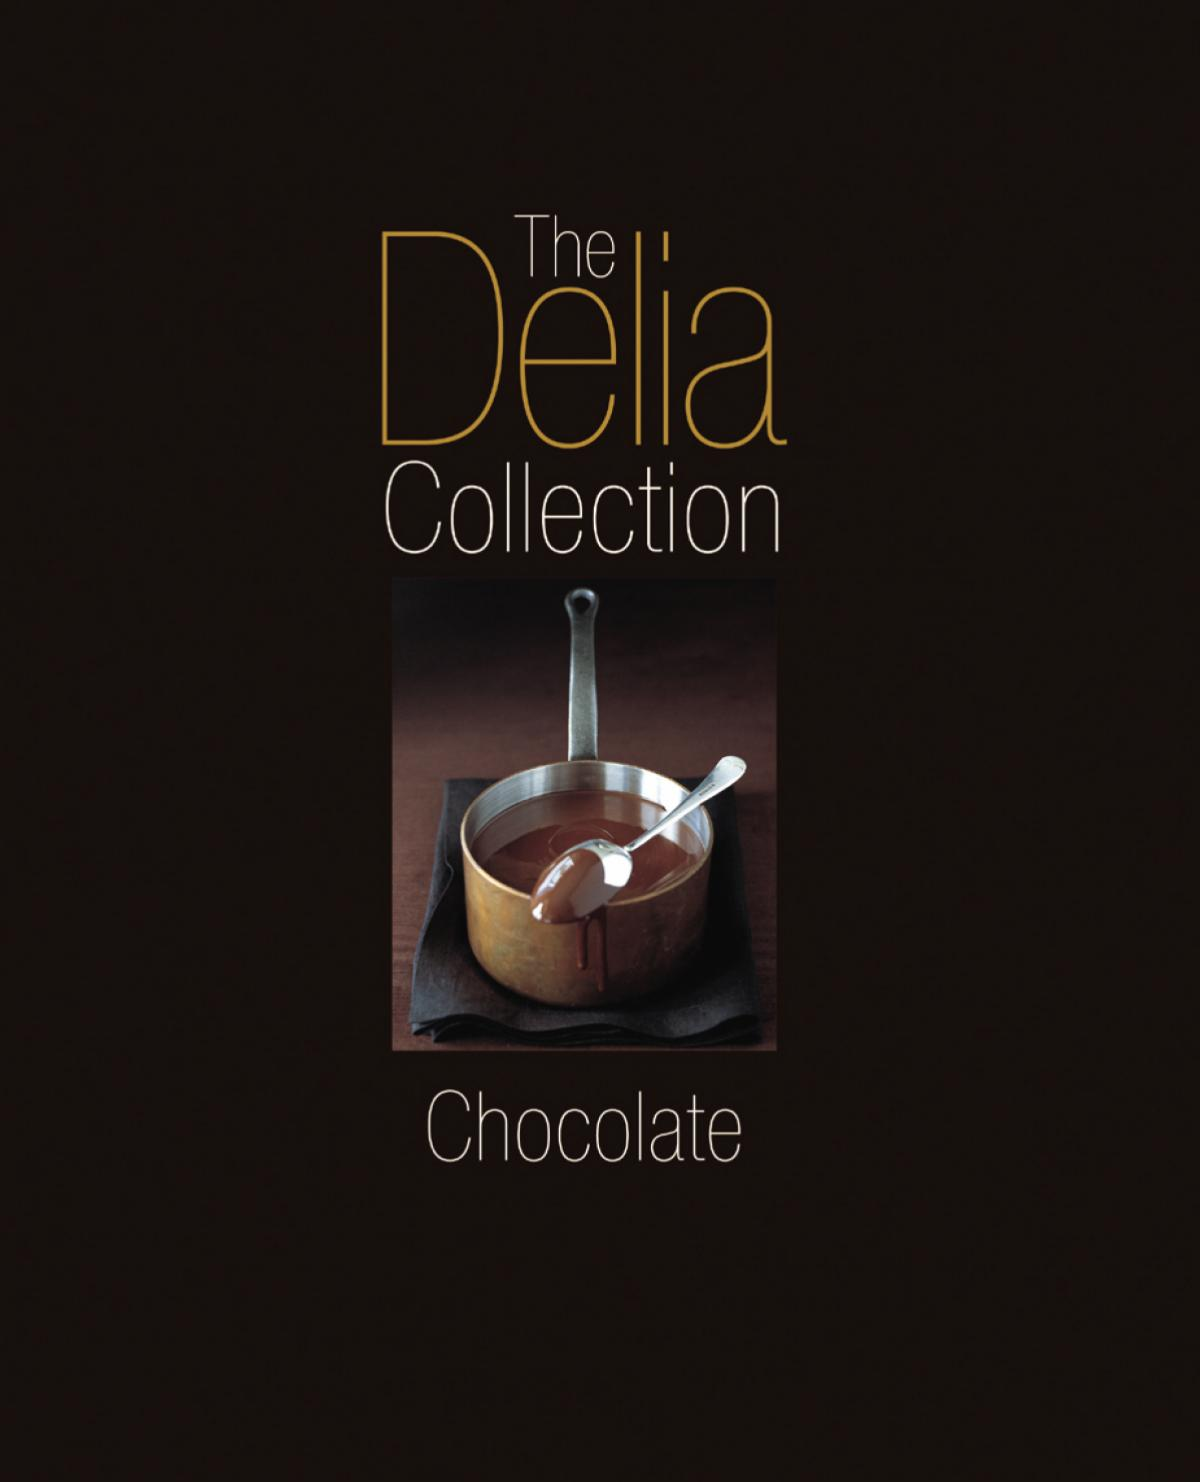 A picture of Delia's The Delia Collection: Chocolate recipes